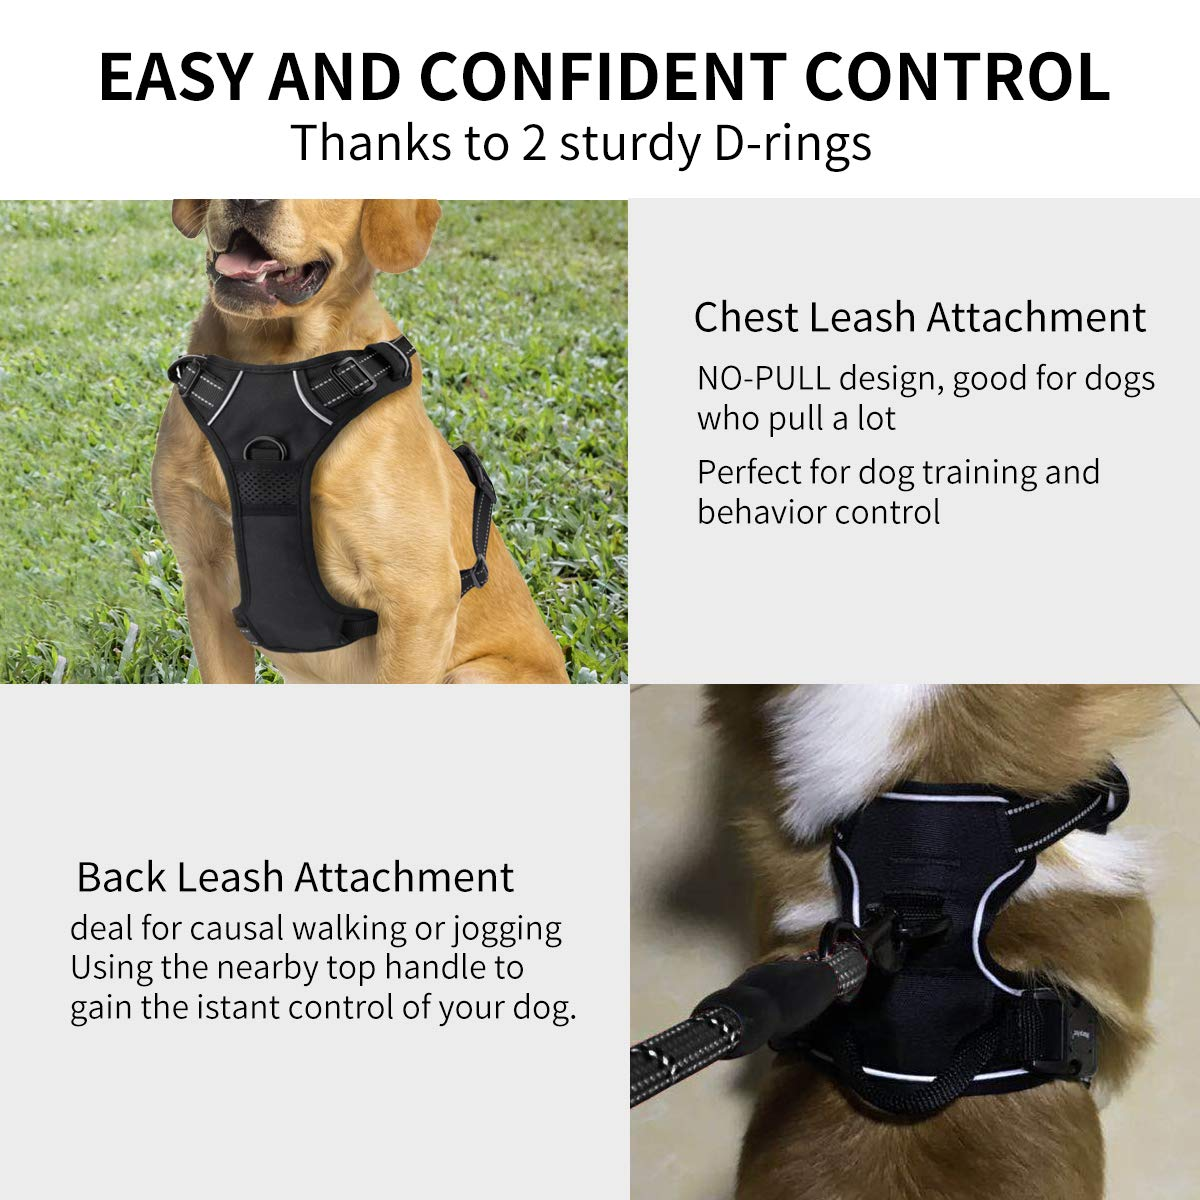 Vest Harnesses for Dogs, Morpilot Dog Harness No-Pull Pet Harness Adjustable Outdoor Pet Vest 3M Reflective Oxford Material Vest for Dogs, Easy Control for Small Medium Large Dogs